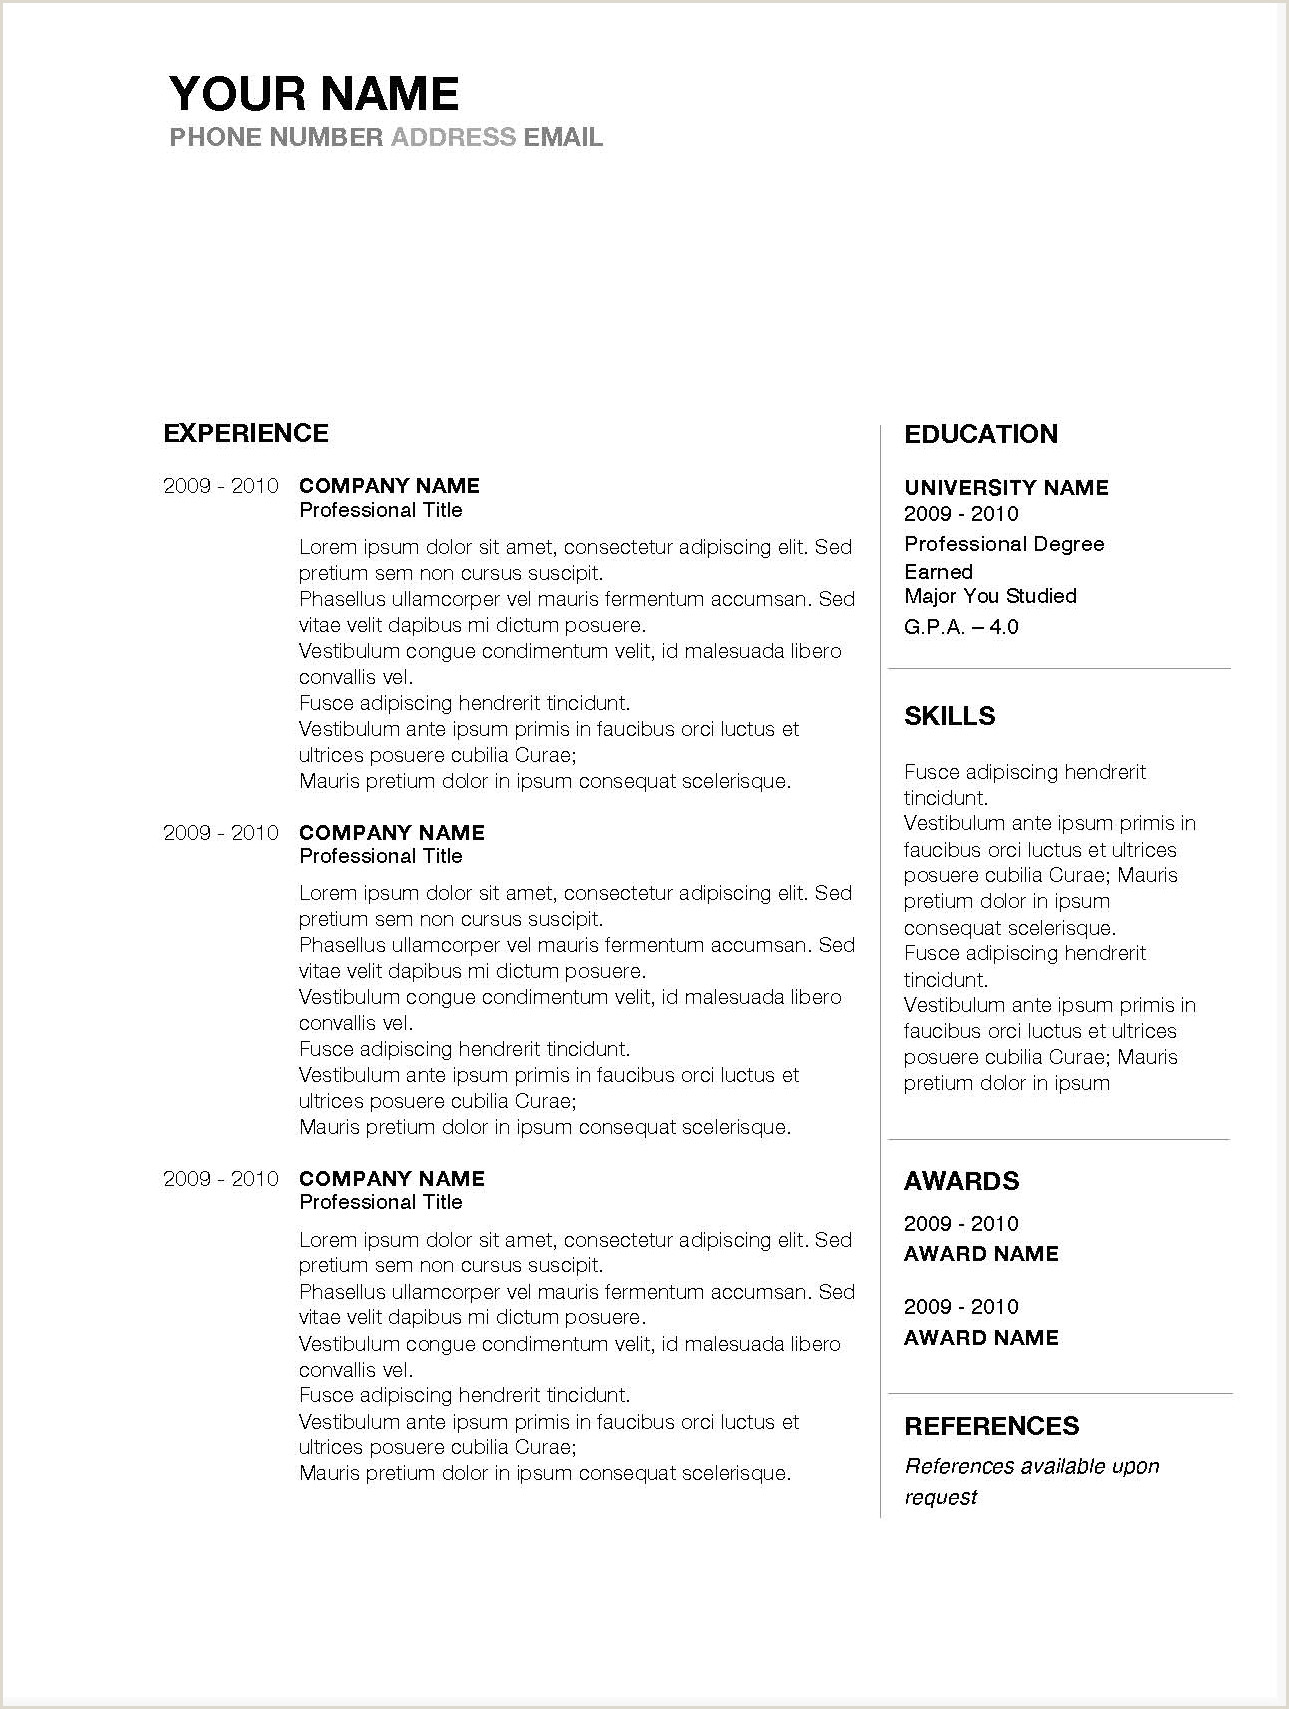 Best Microsoft Word Resume Template Free Inspirational Cv